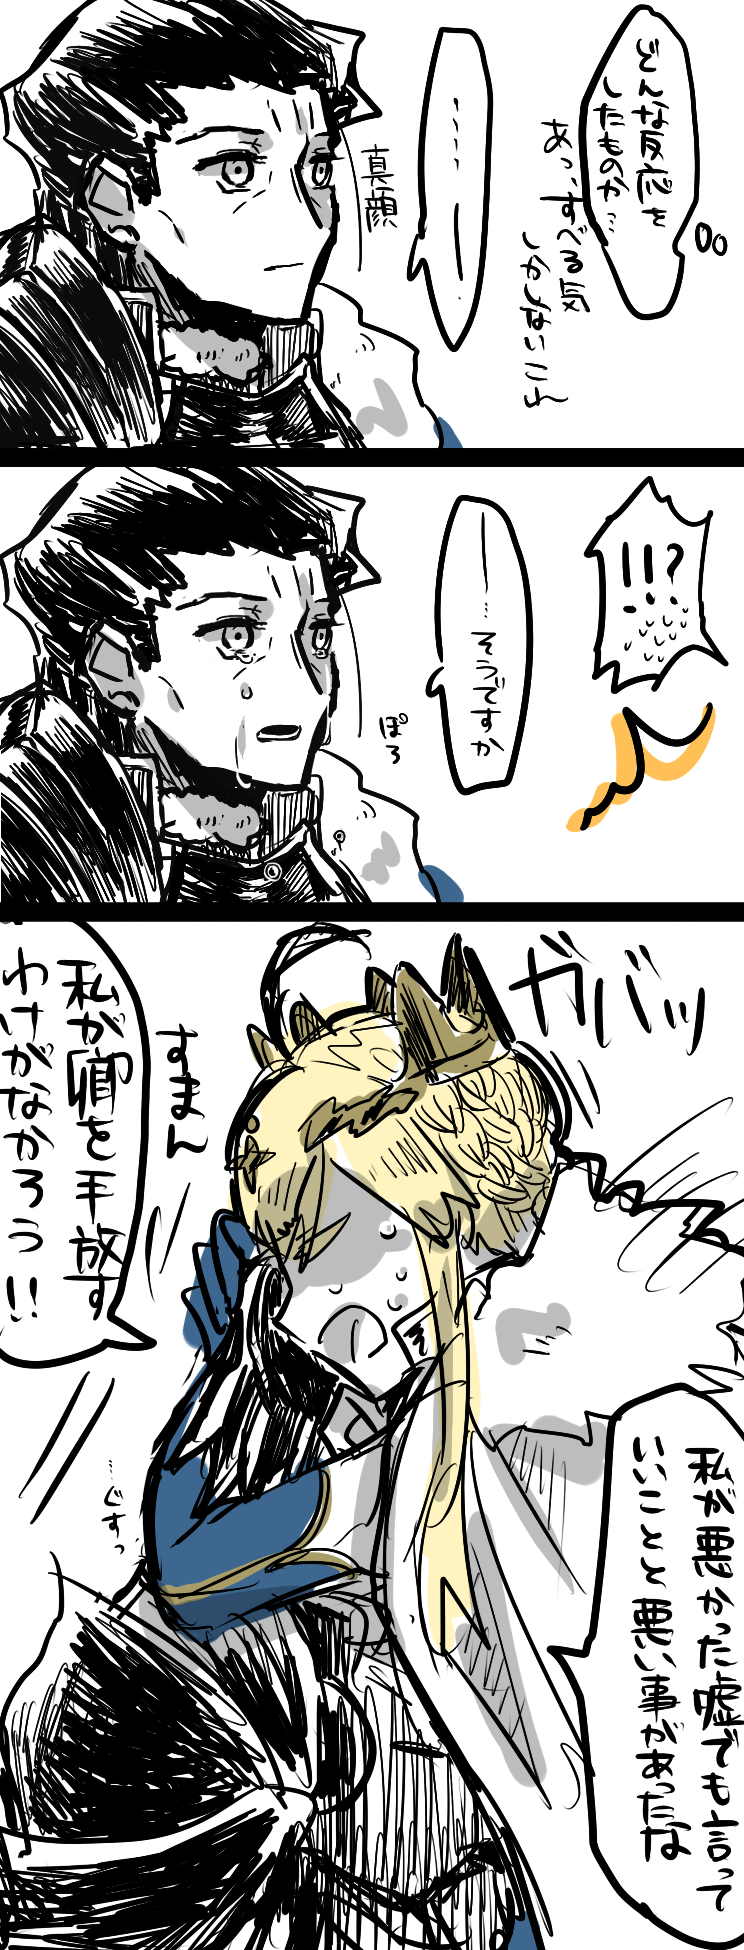 3koma agravain_(fate/grand_order) armor artoria_pendragon_lancer_(fate/grand_order) black_hair blonde_hair cape comic crown elbow_gloves eyes_closed fate/grand_order fate_(series) fur gloves open_mouth short_hair shoulder_pads tears white_eyes